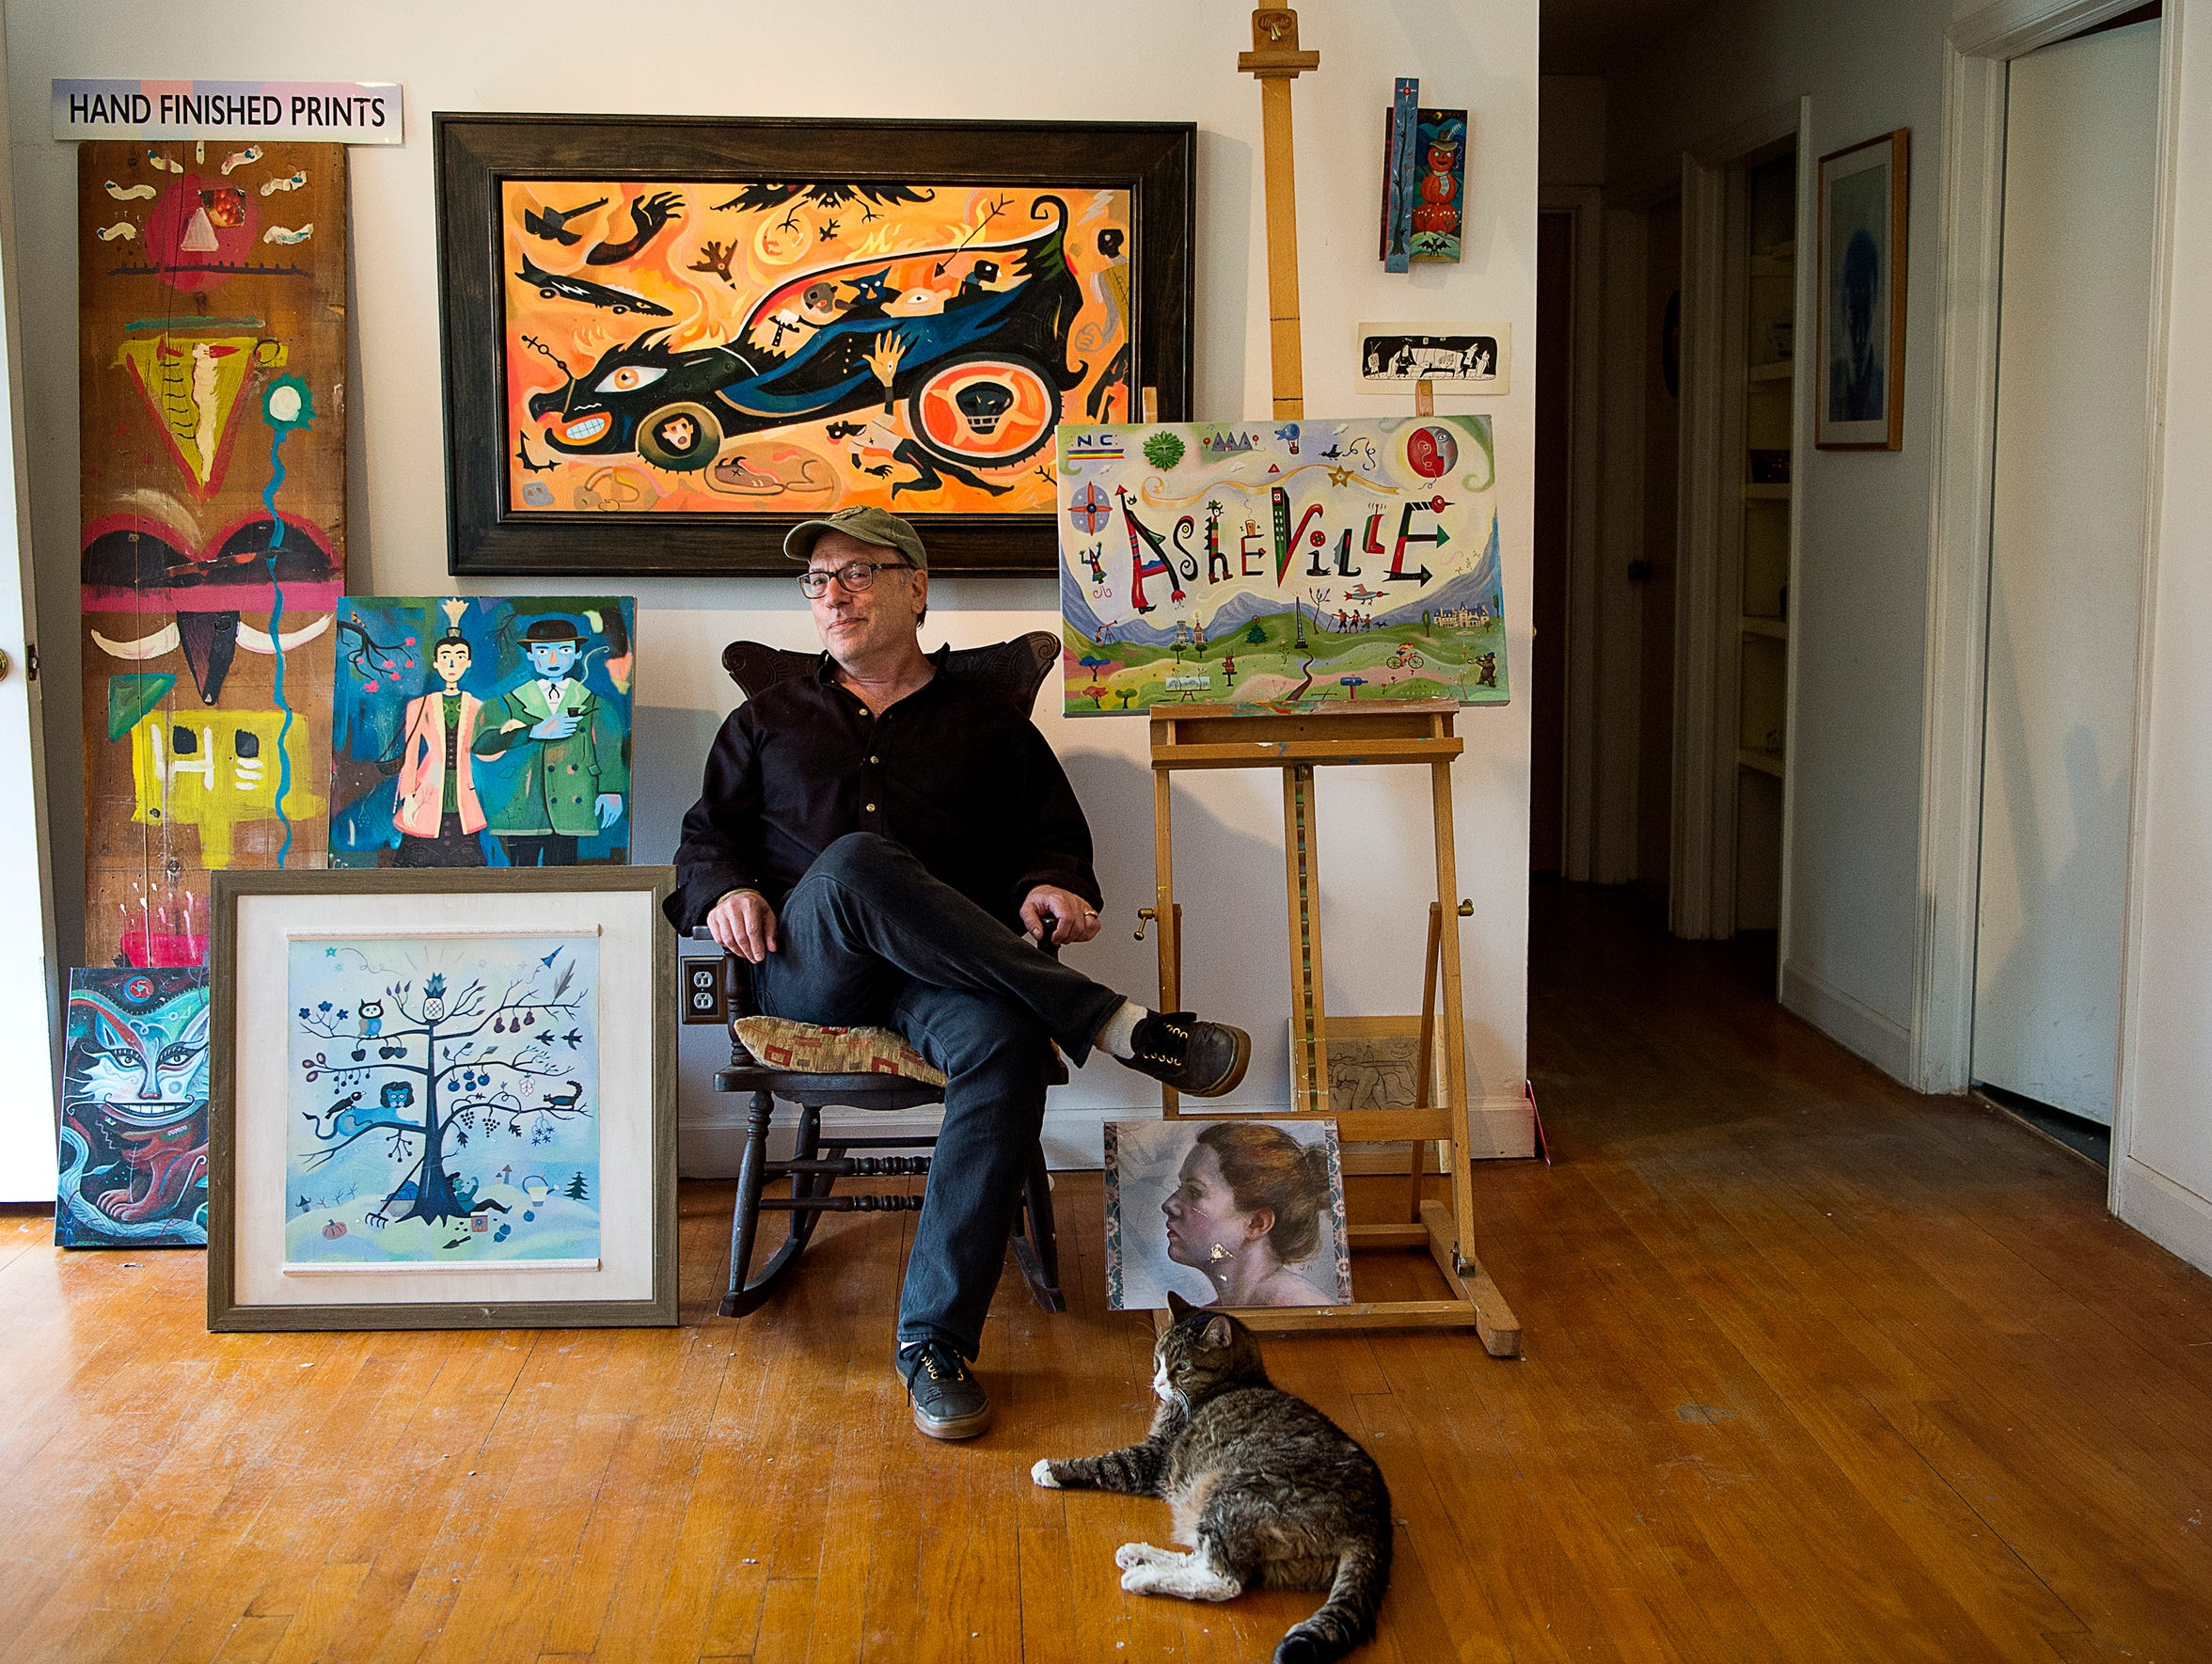 Andy Levine, an artist who works under the name John